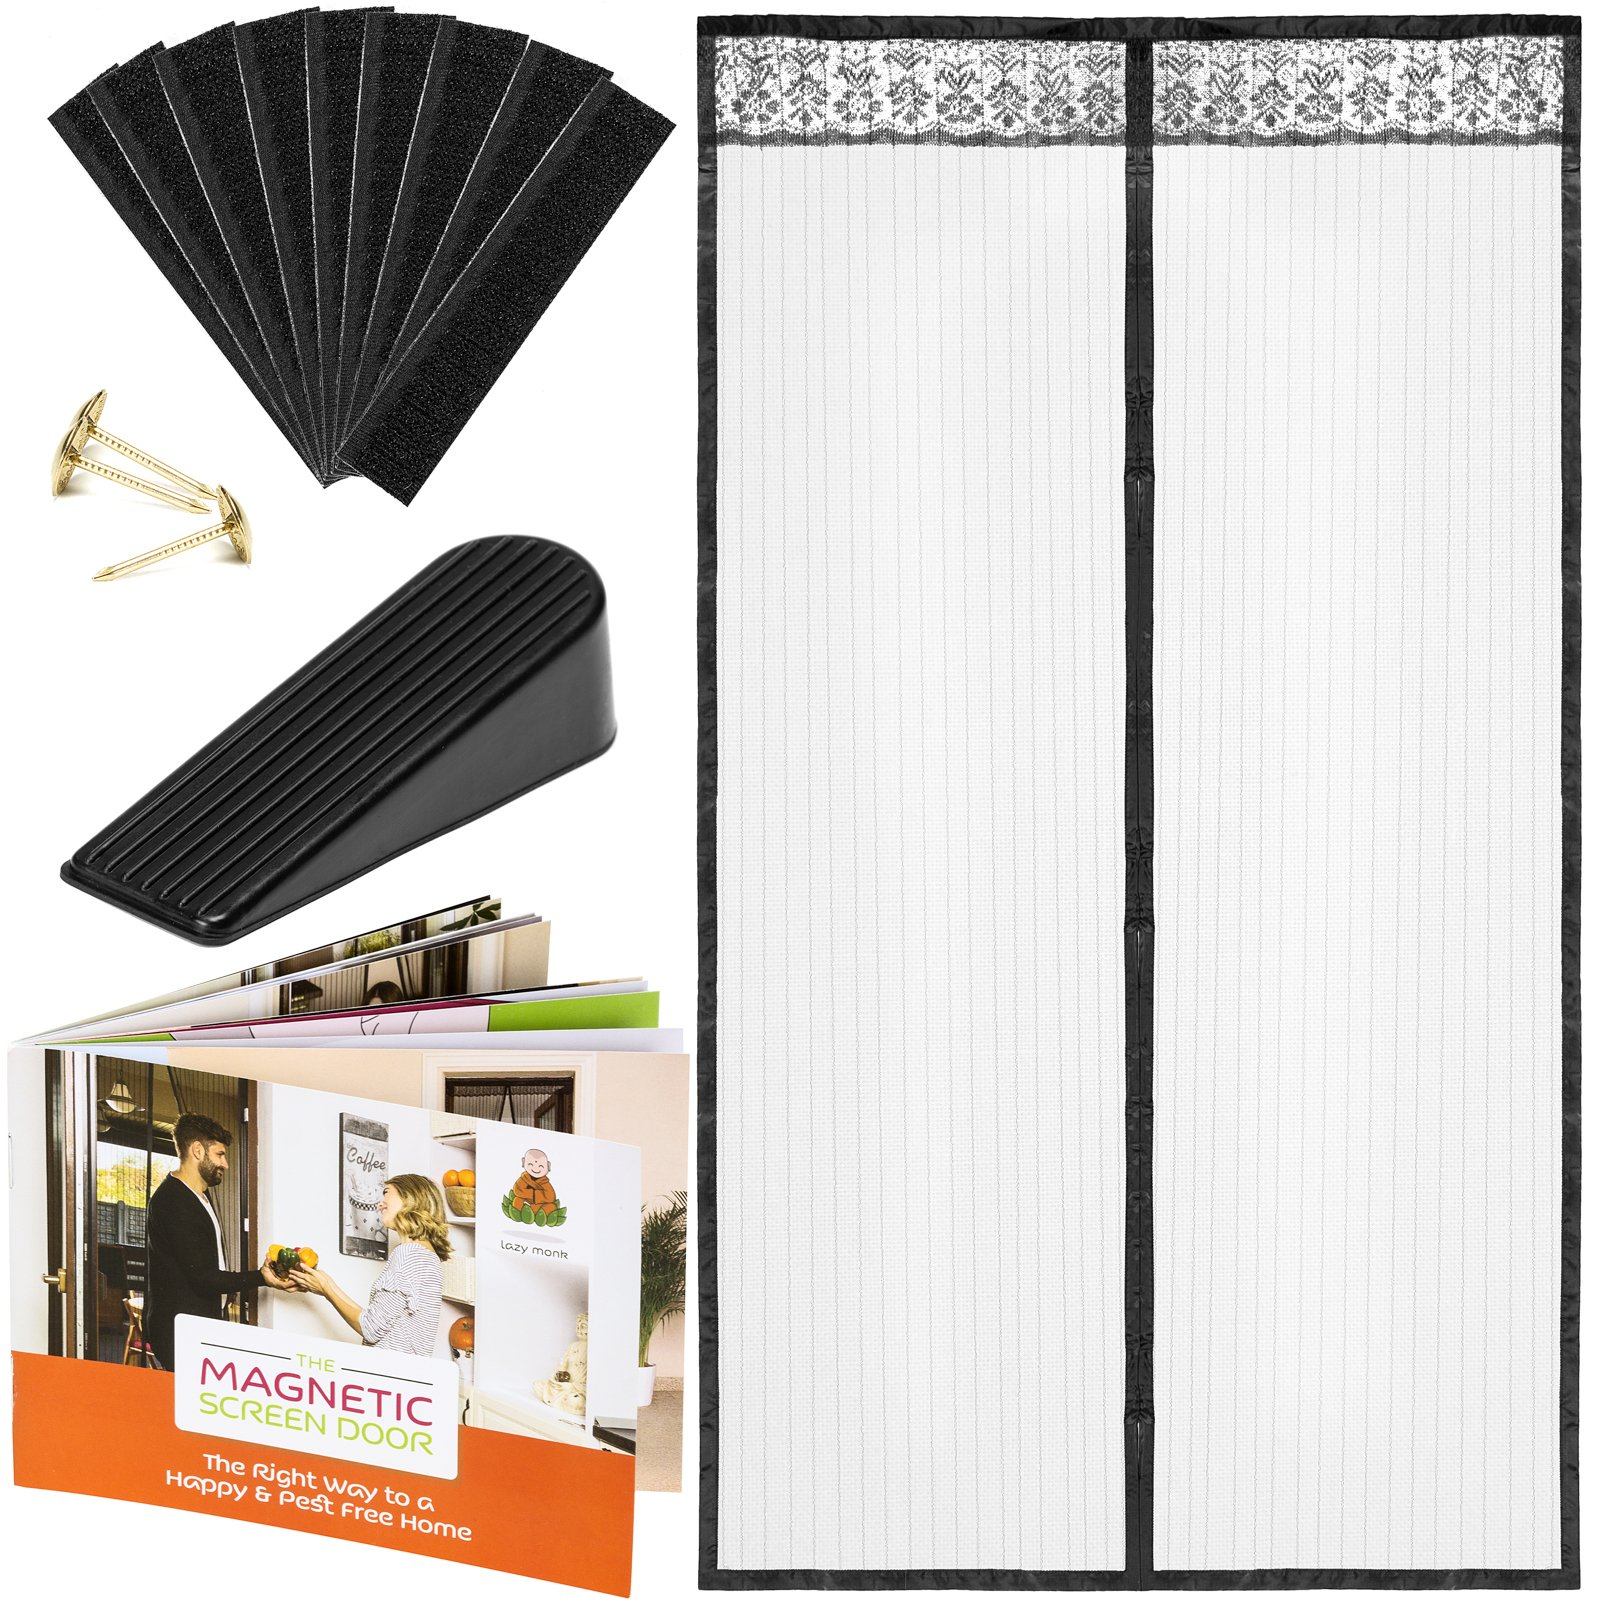 Magnetic Screen Door with Magnets I Premium Magnet Curtain with Mesh & Mosquito Screens I Bug Net for Doors [Upgraded 2018 Version] up to 39'' x 82'' Max